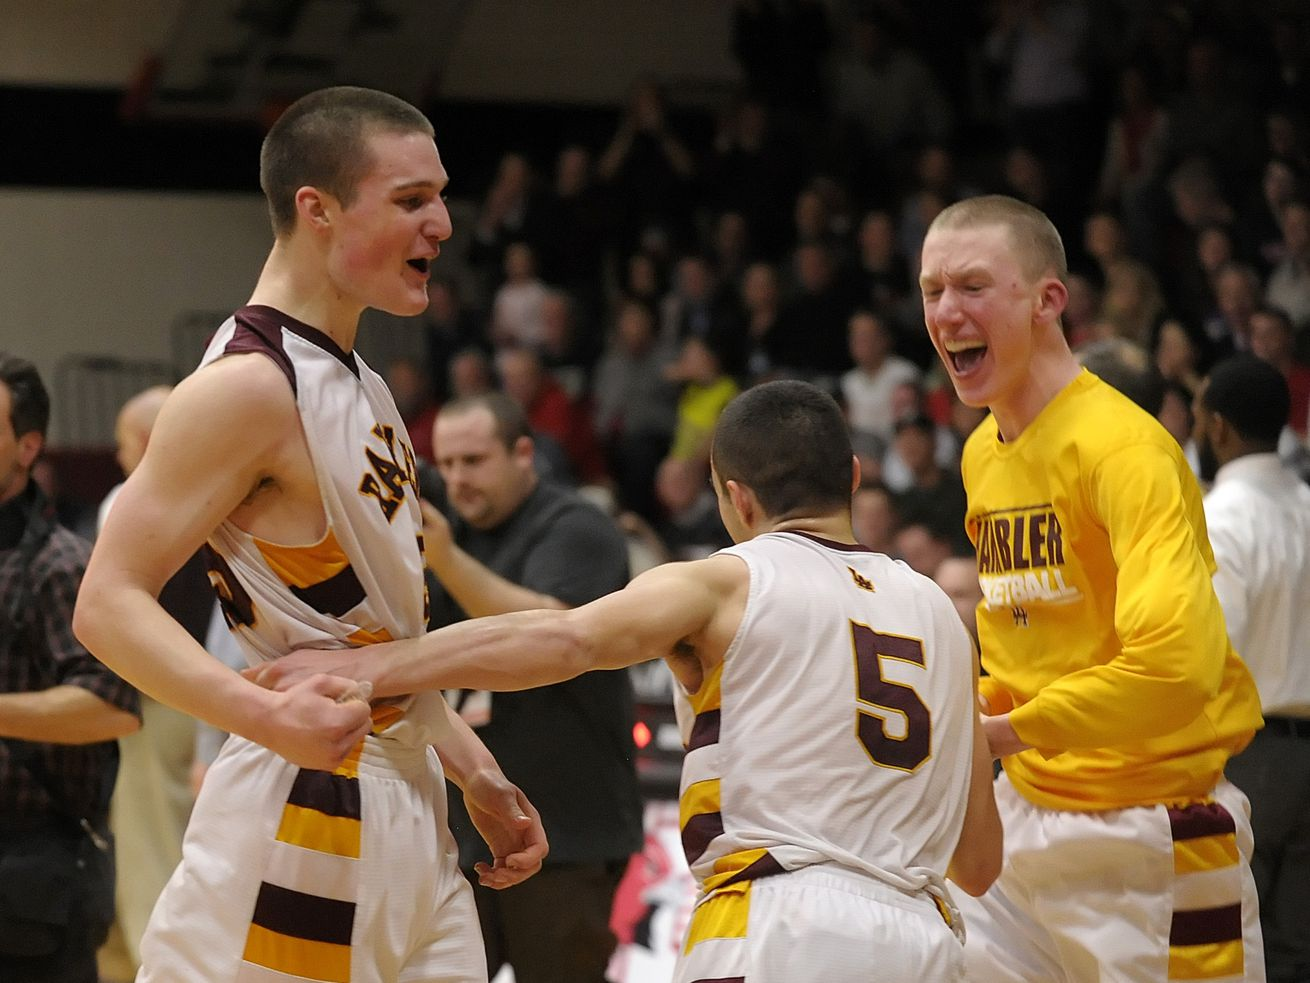 Loyola's Jack Morrissey celebrates with James Clarke (5) after the final buzzer. Loyola defeated Maine South 42-37 to win the Class 4A Maine South Sectional in 2014.